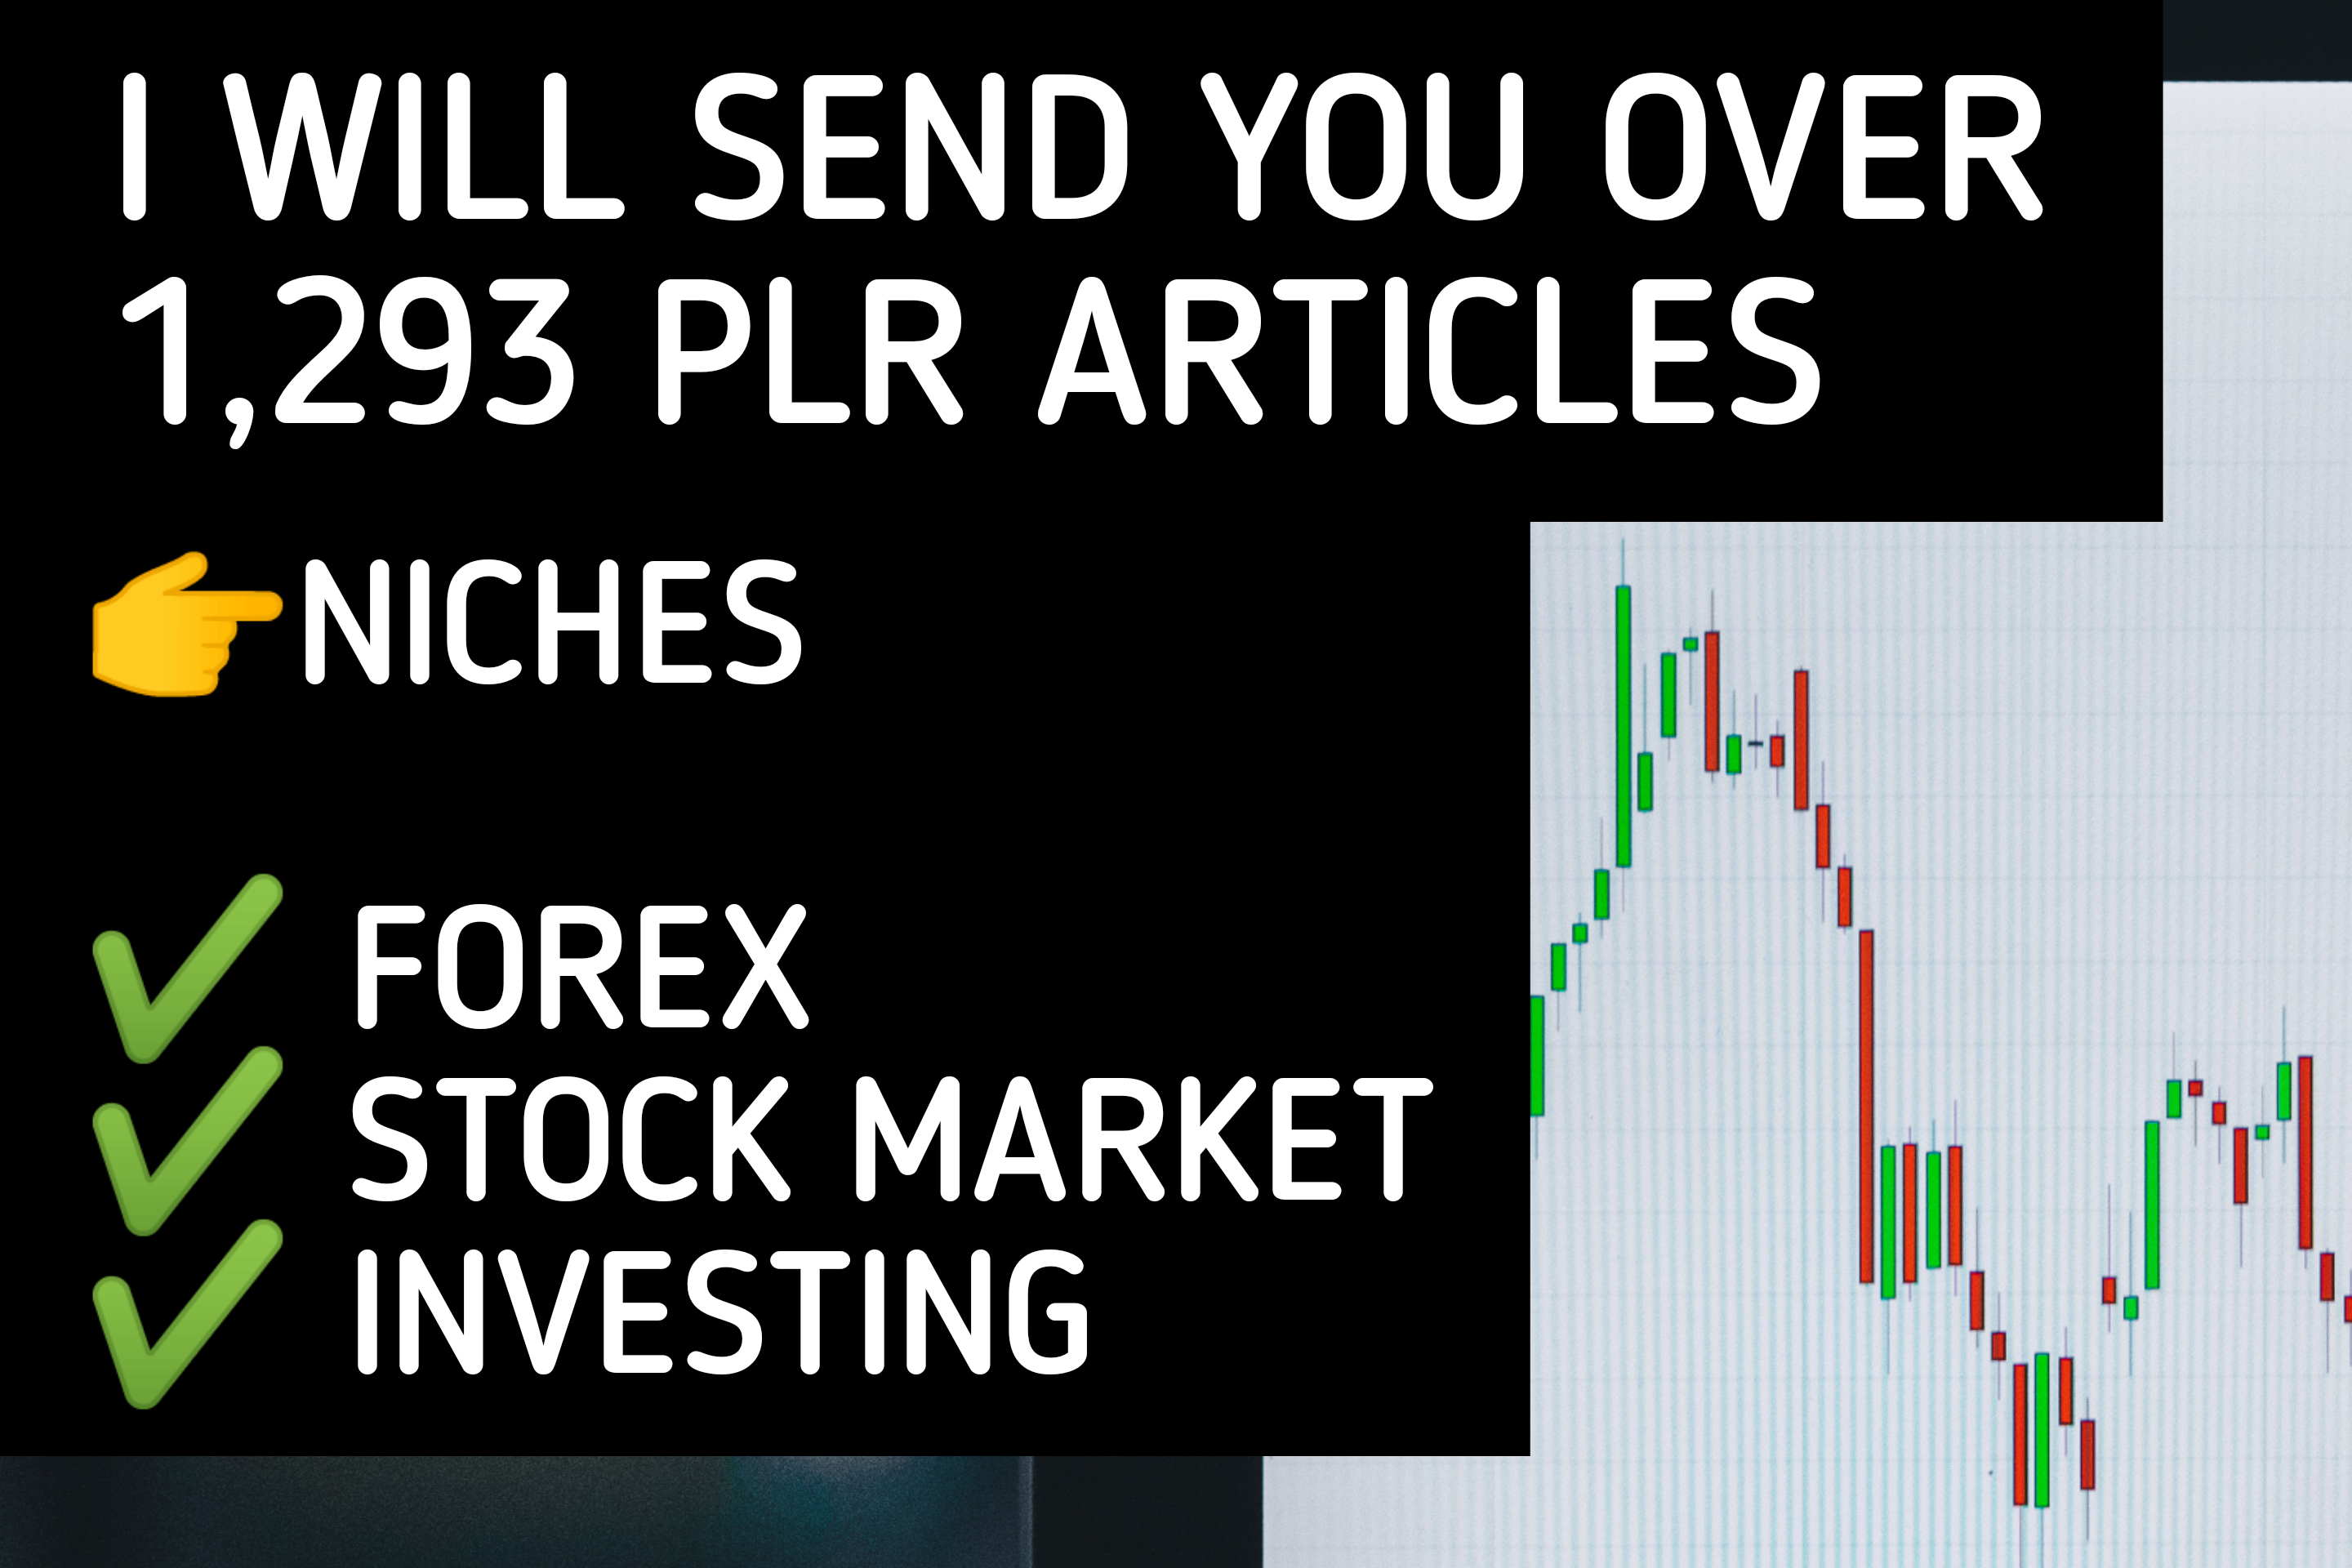 I will send you over 1293 plr articles on stock market,investing,forex